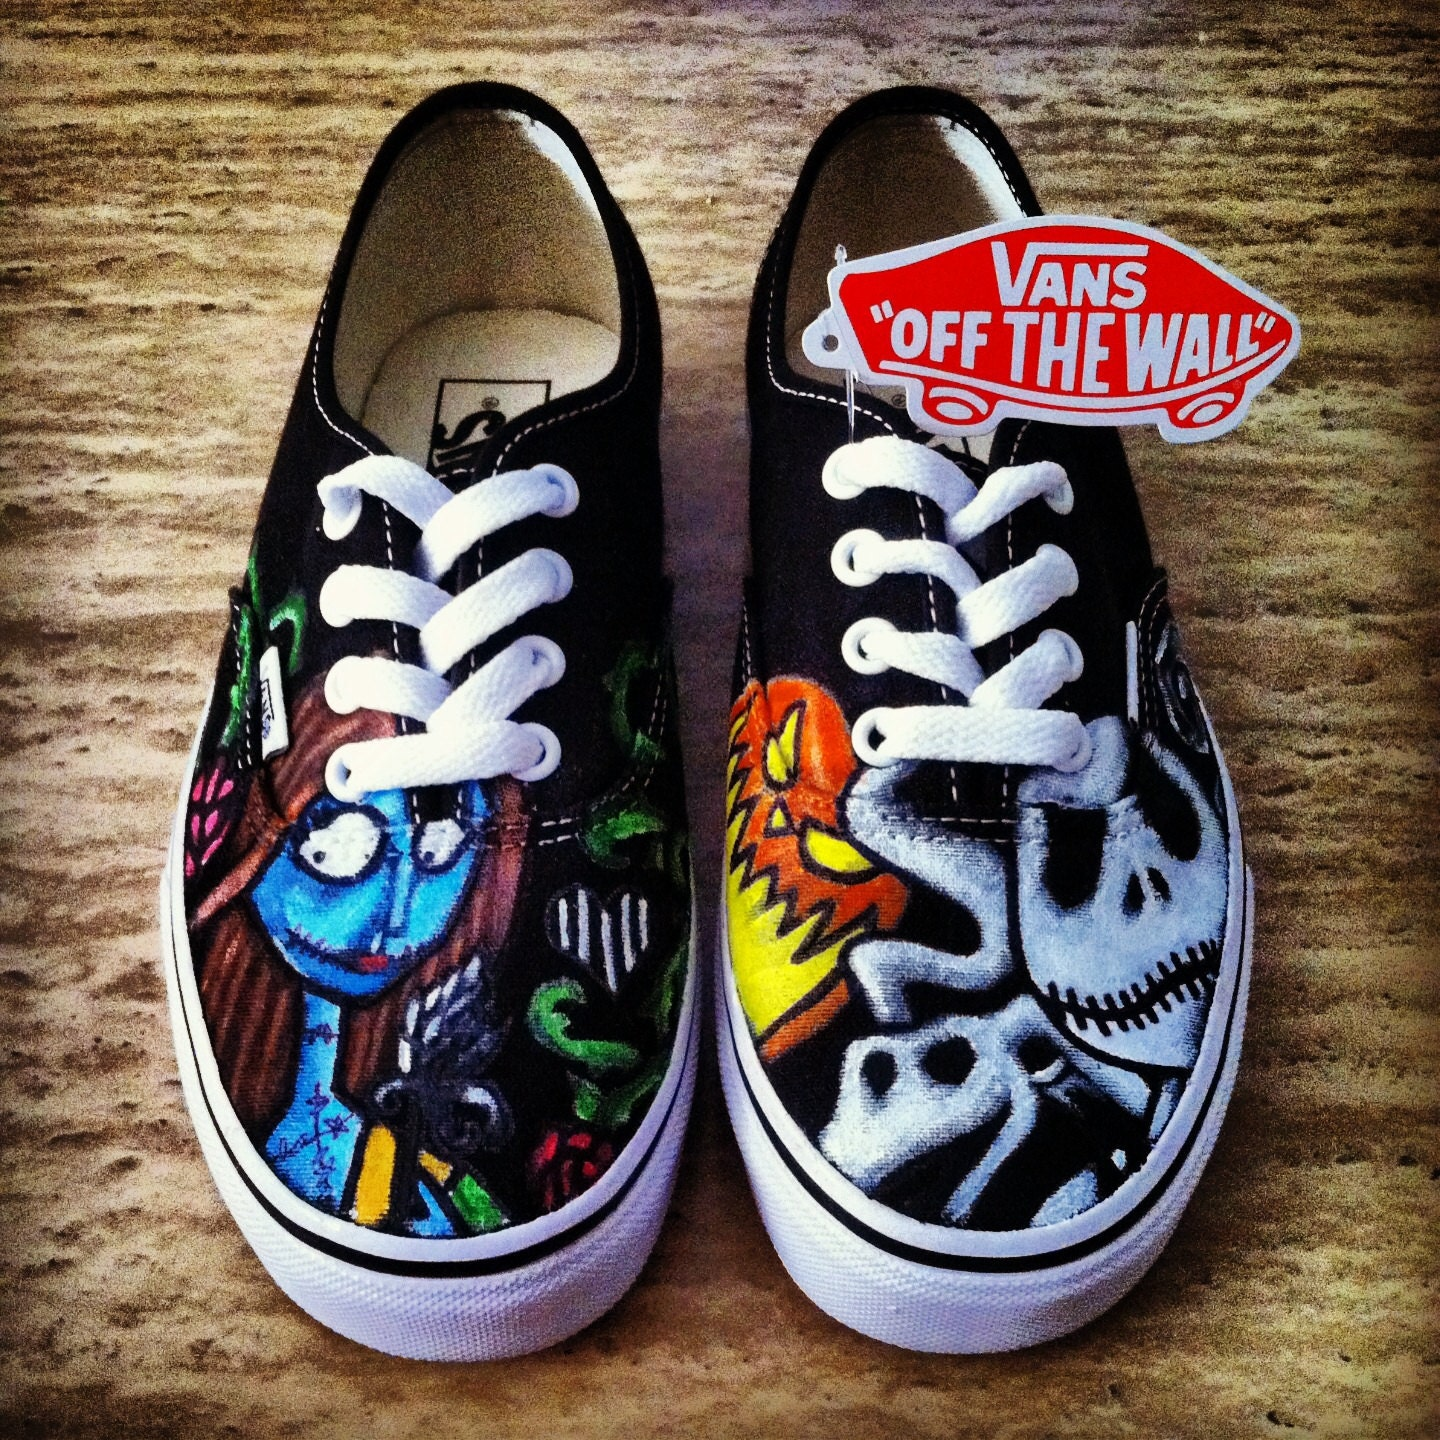 custom vans shoes south africa